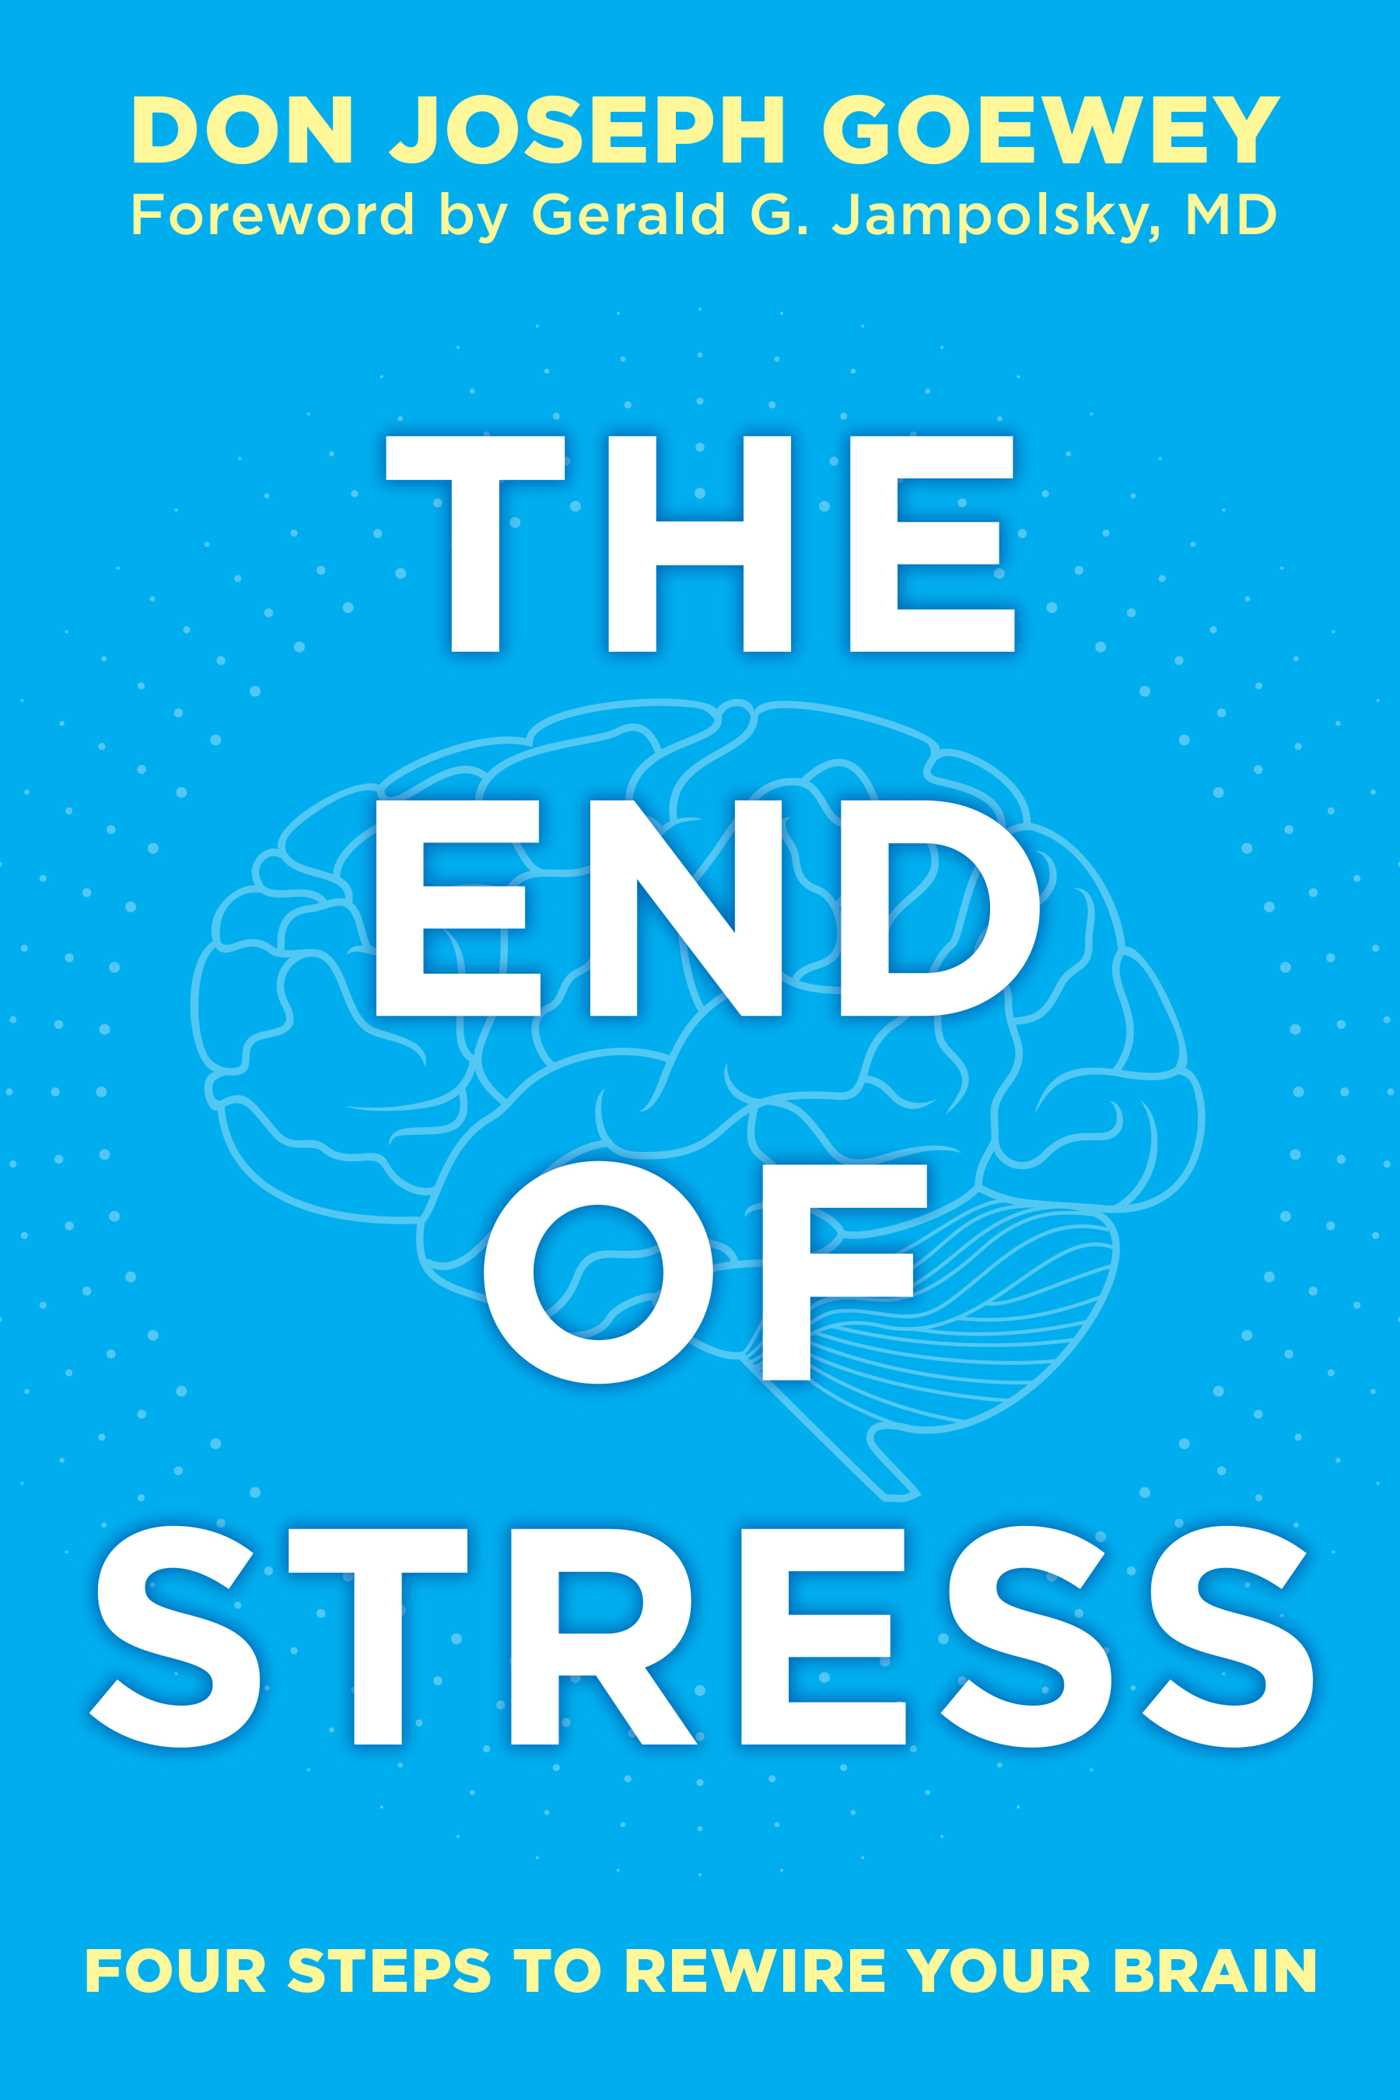 End-of-stress-9781582704913_hr